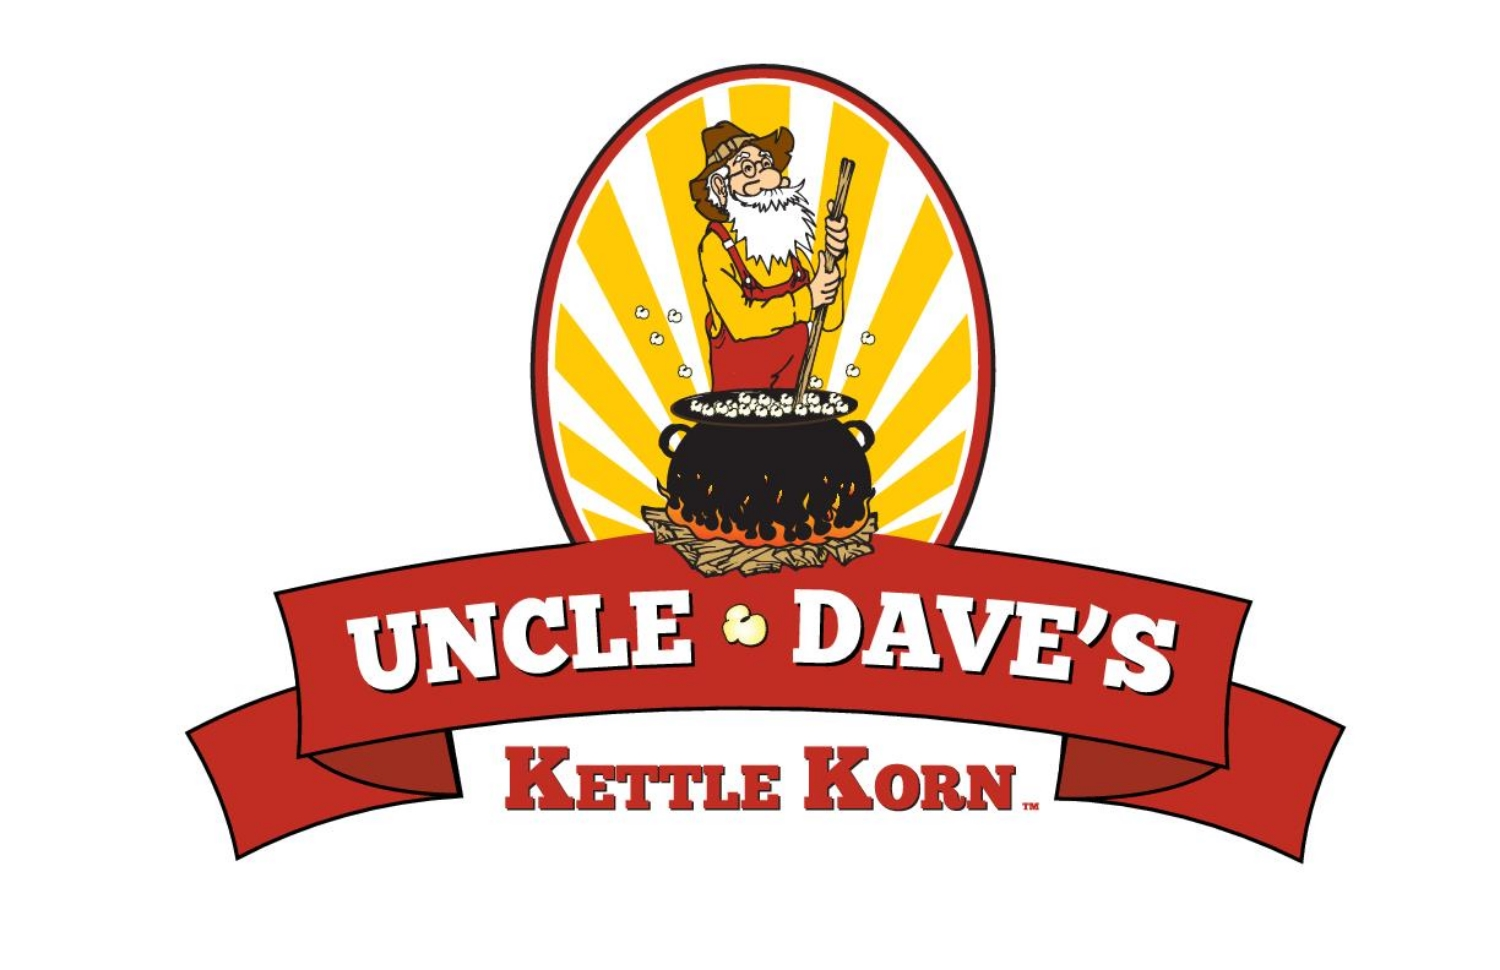 Uncle Dave's Kettle Korn Leesburg